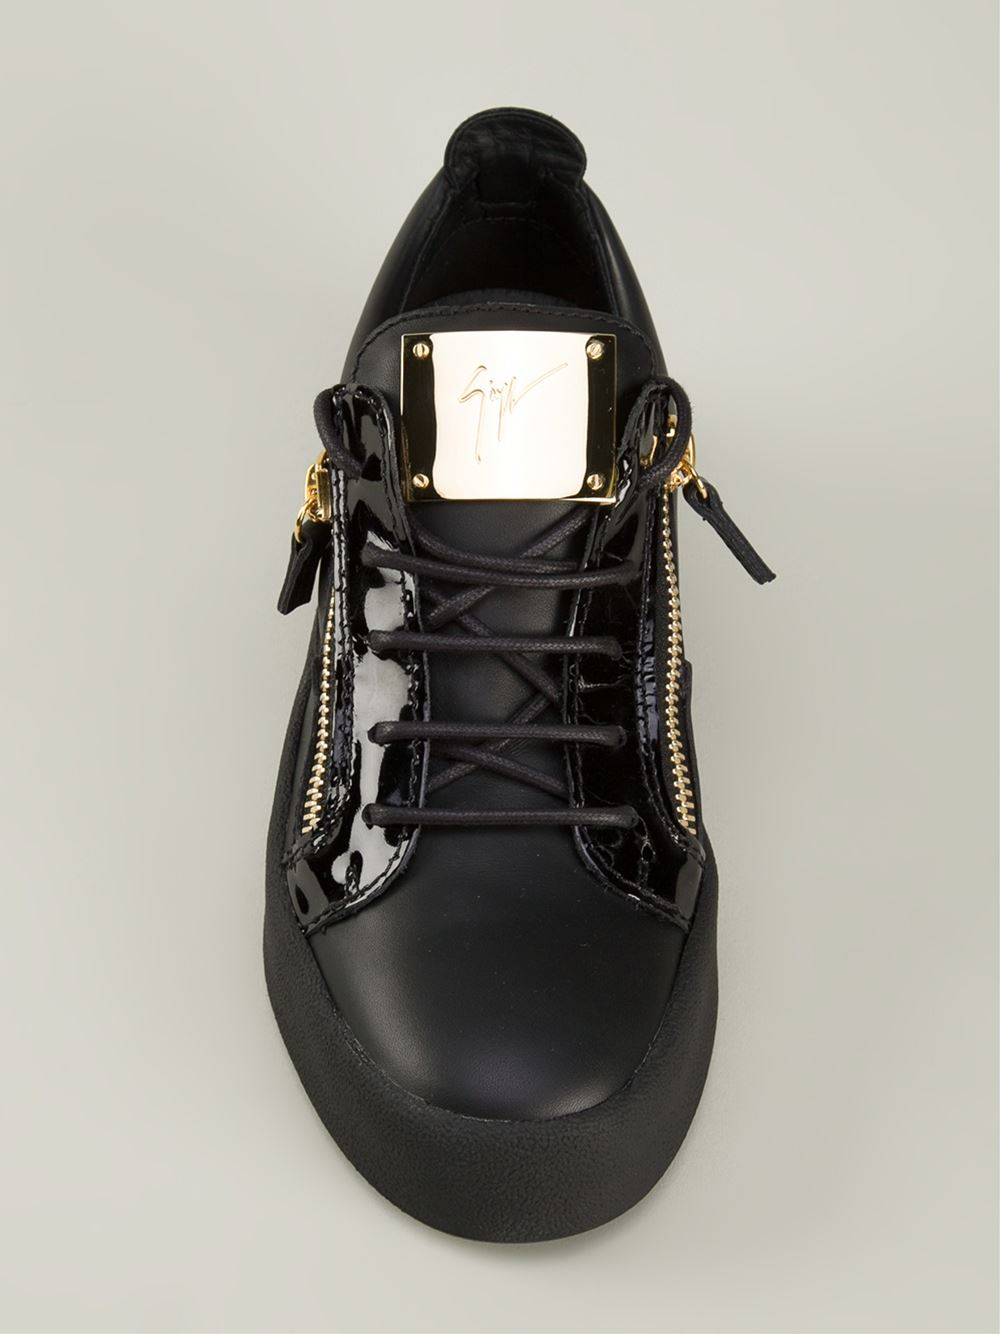 Giuseppe Zanotti Low tops amp Trainers In Black For Men Lyst